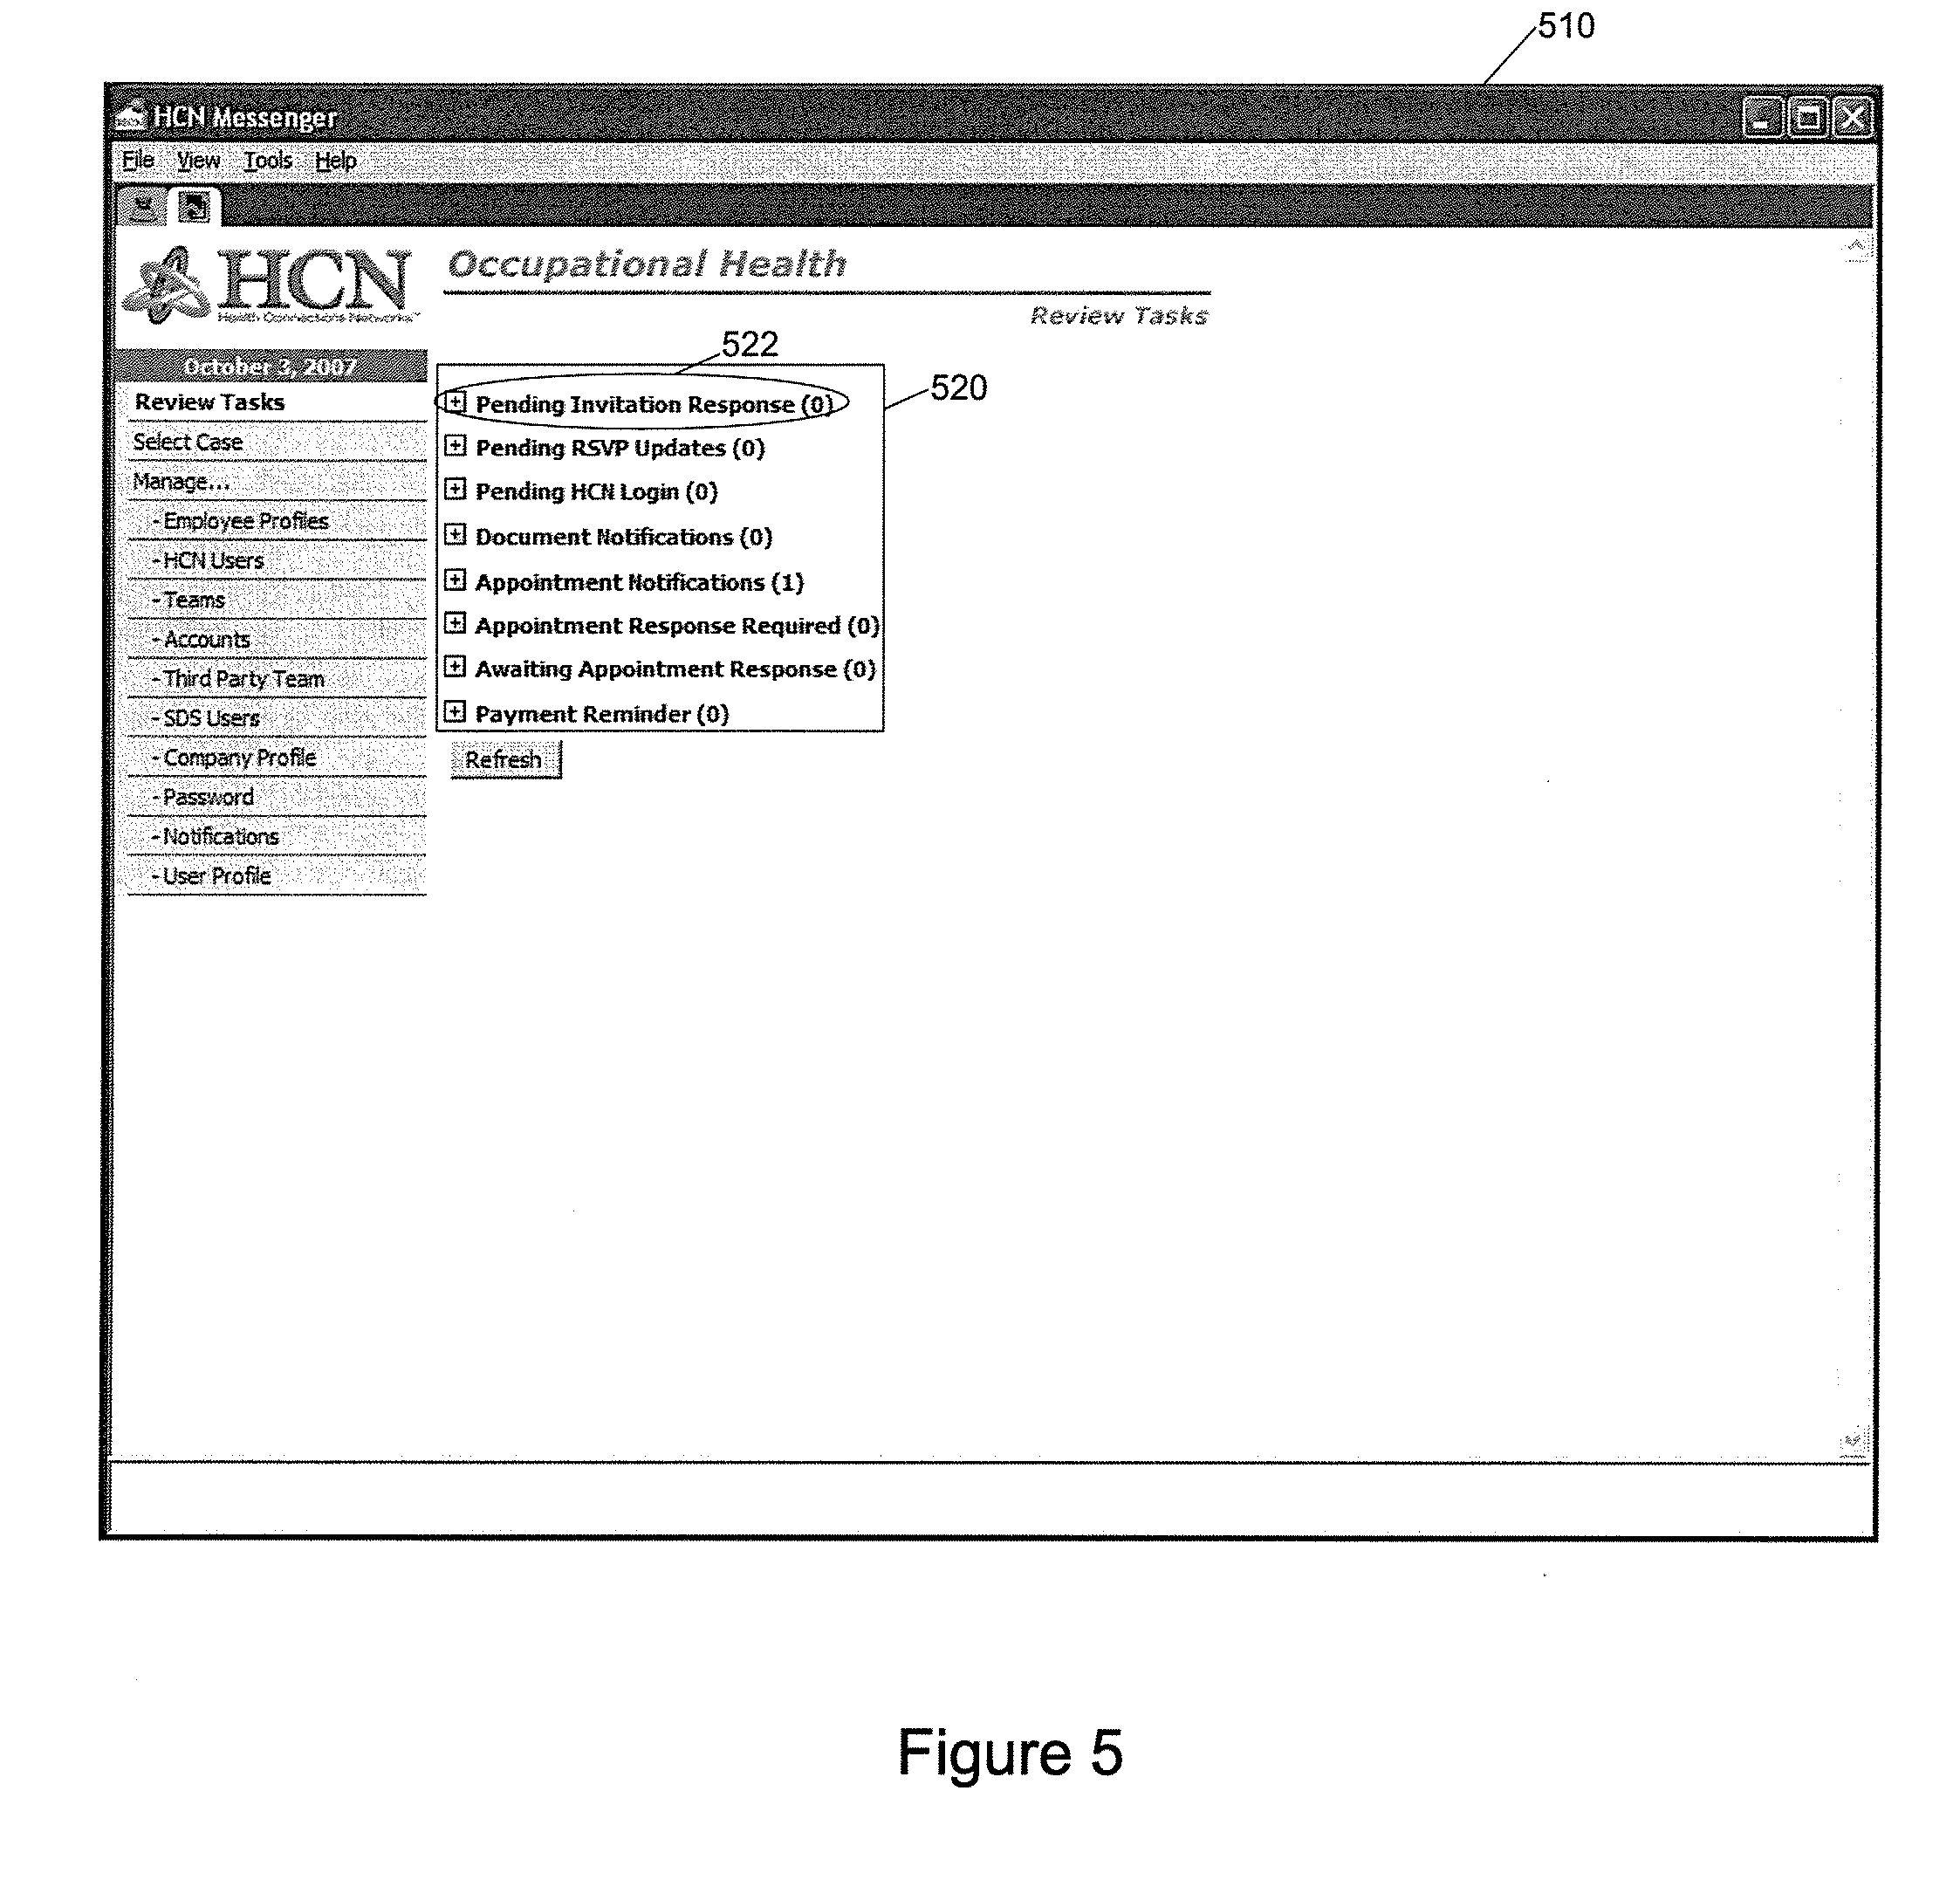 Receipts Box Word Patent Us  Integrated Access To Occupational  Donation Invoice Template Excel with Invoice Proforma Word Pdf Patent Drawing Invoices And Statements Pdf